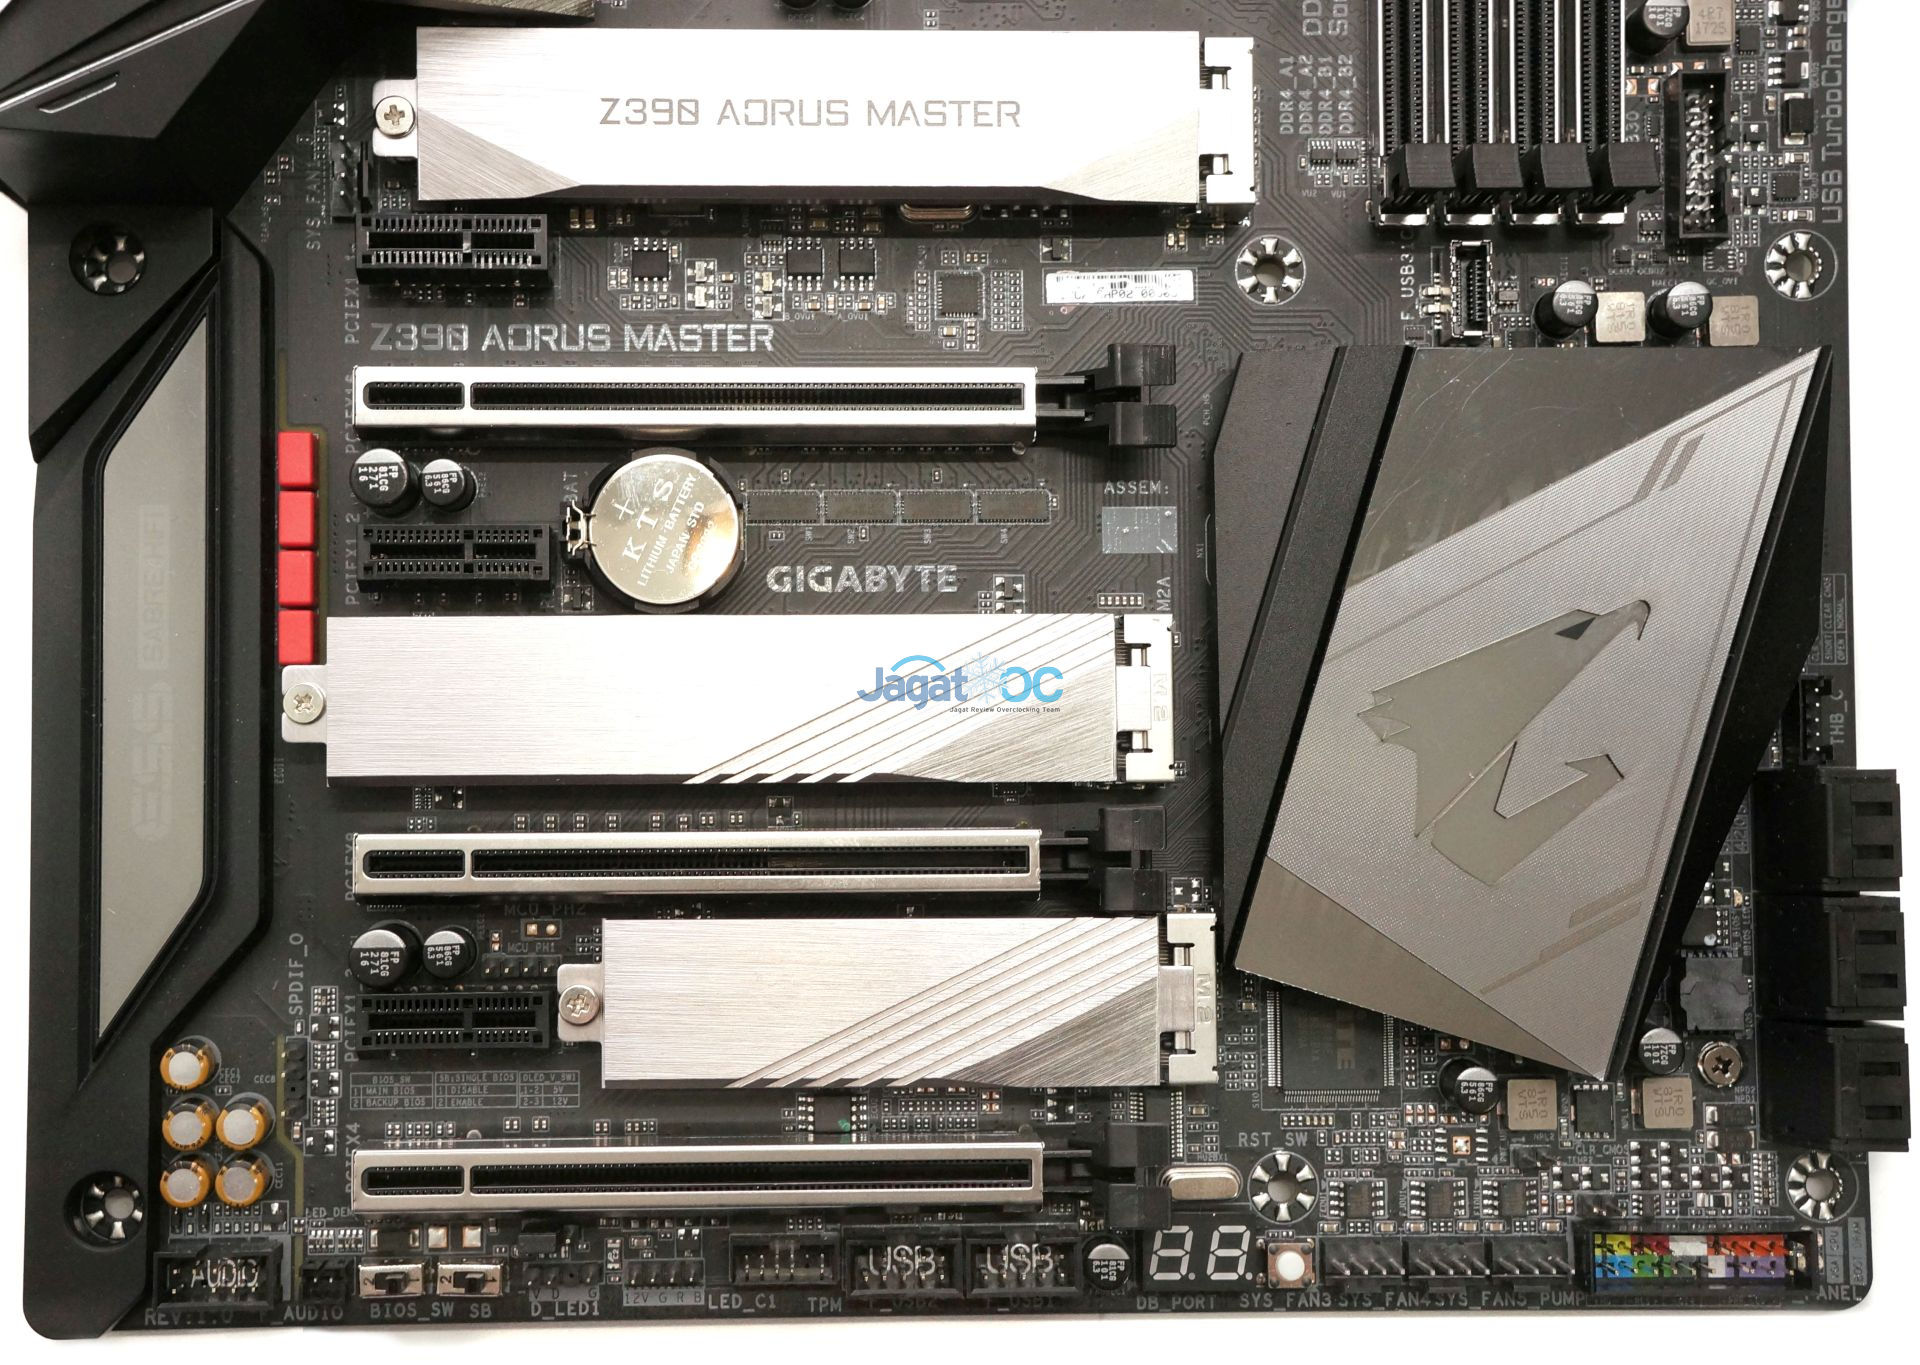 block diagram io overclocking review gigabyte z390 aorus master  overclocking review gigabyte z390 aorus master